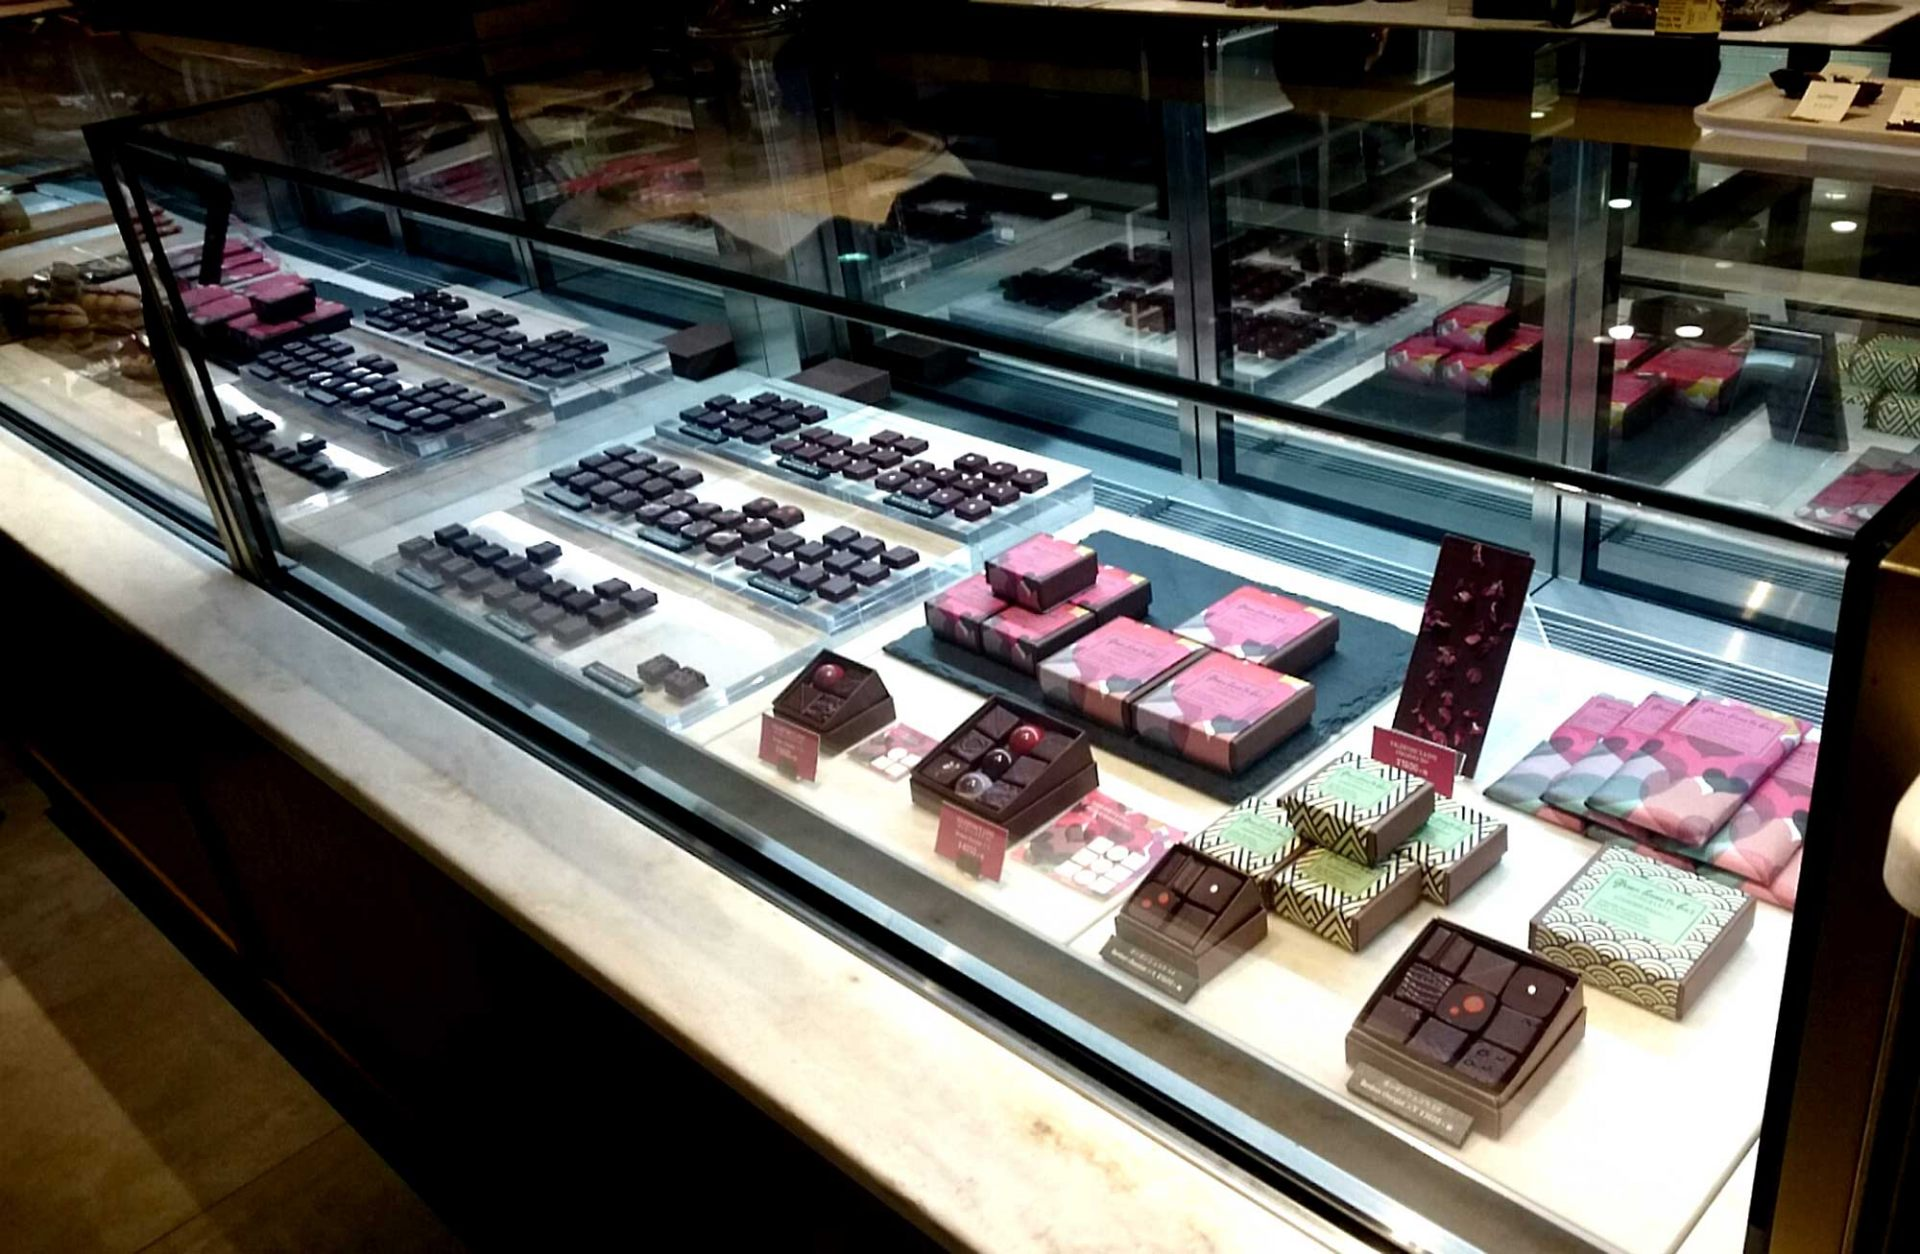 Their chocolate is as beautiful as jewelry, making it so hard to choose!